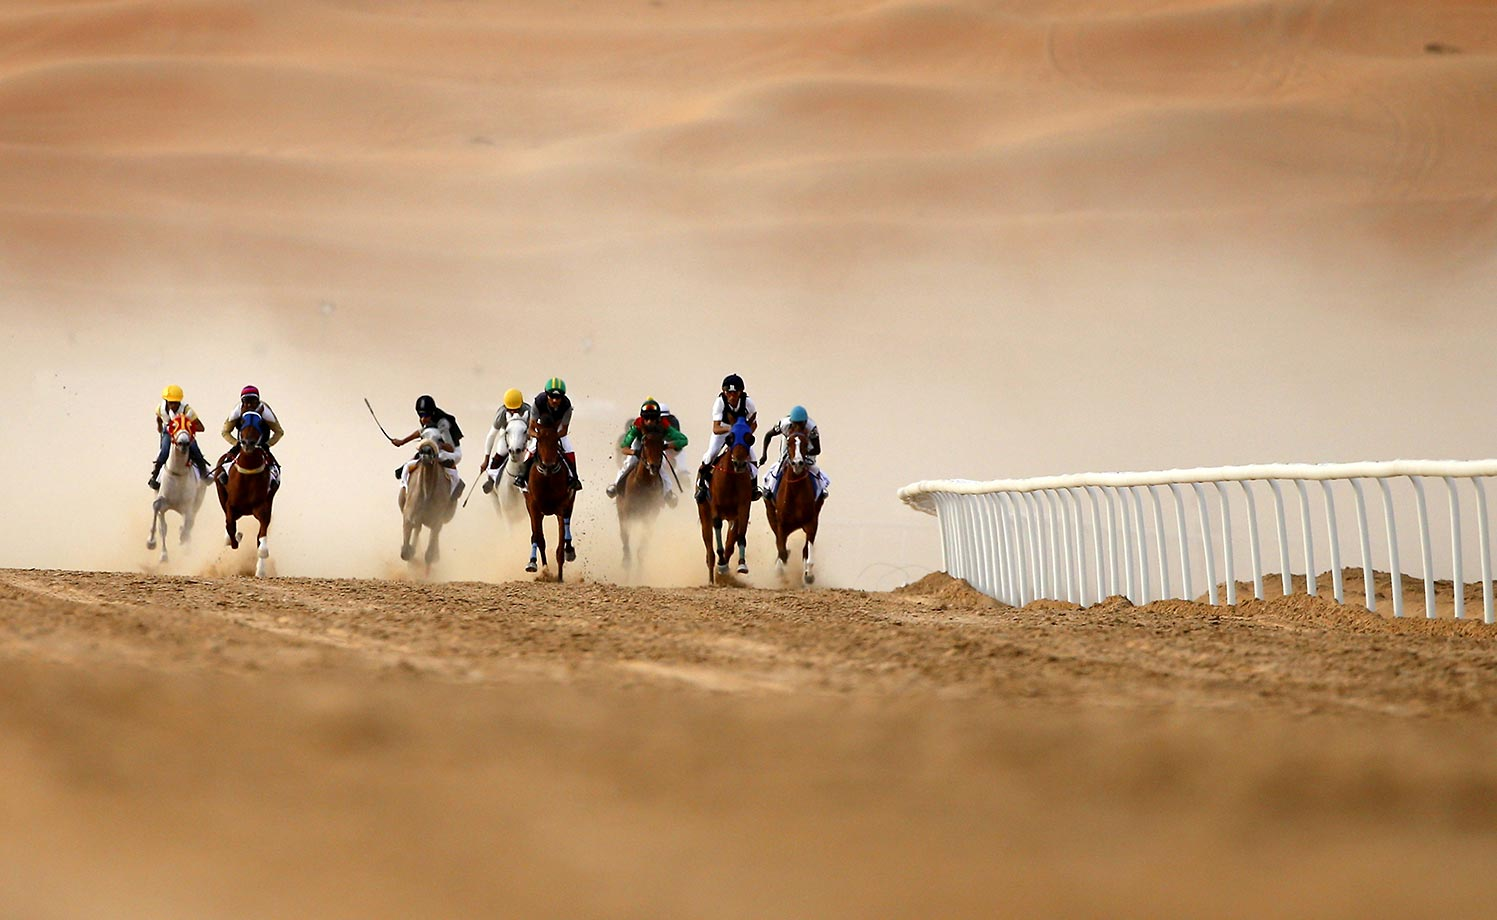 Jockeys compete in a race for purebred Arab horses during the Liwa 2016 Moreeb Dune Festival in the Liwa desert.